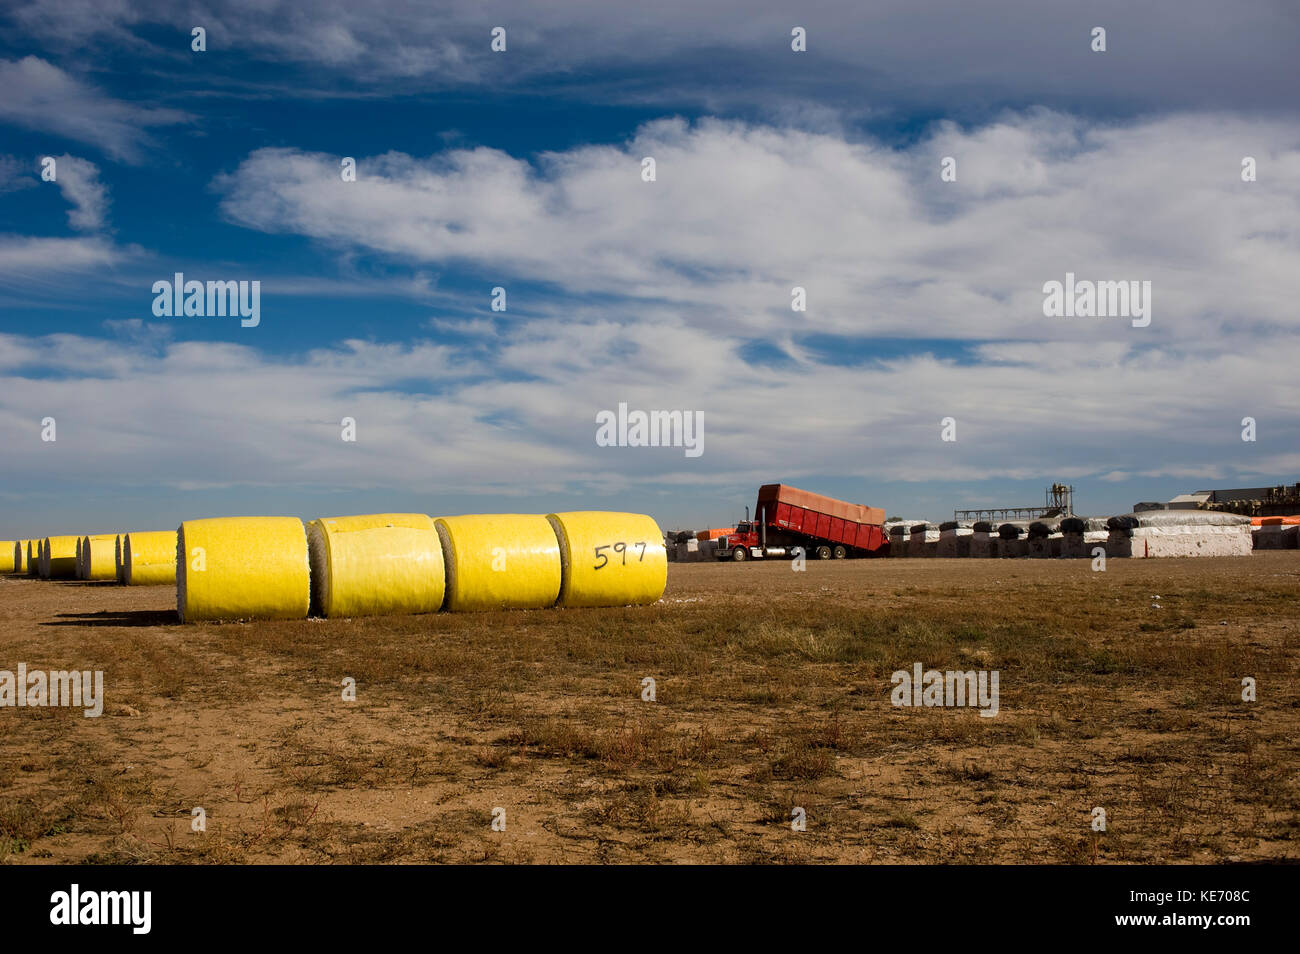 ROUND COTTON BALES OR MODULES AFTER BEING HAULED IN FROM FIELDS STORED IN GIN YARD UNTIL GINNED - Stock Image